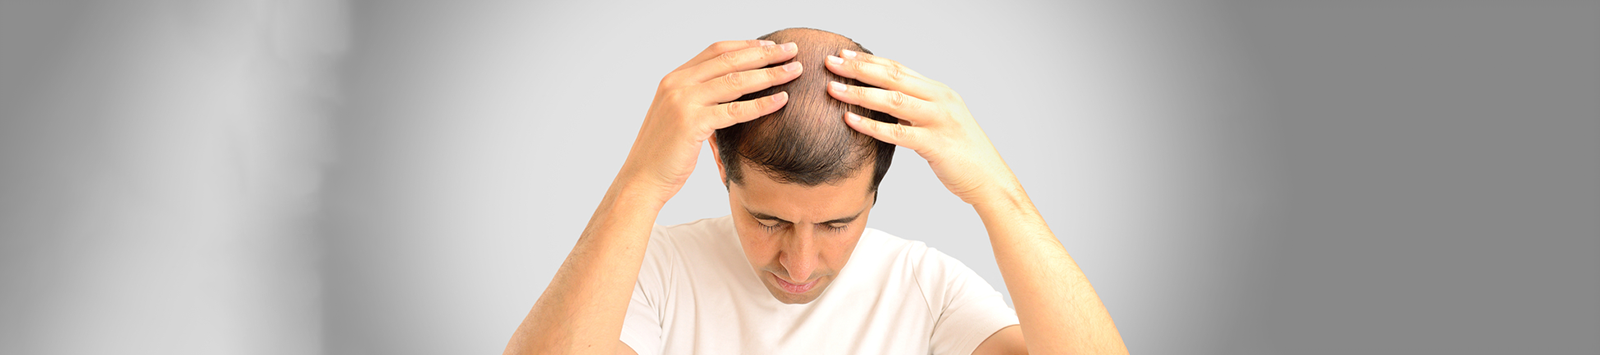 Vitamins, Minerals & Supplements to Control Your Hair Loss